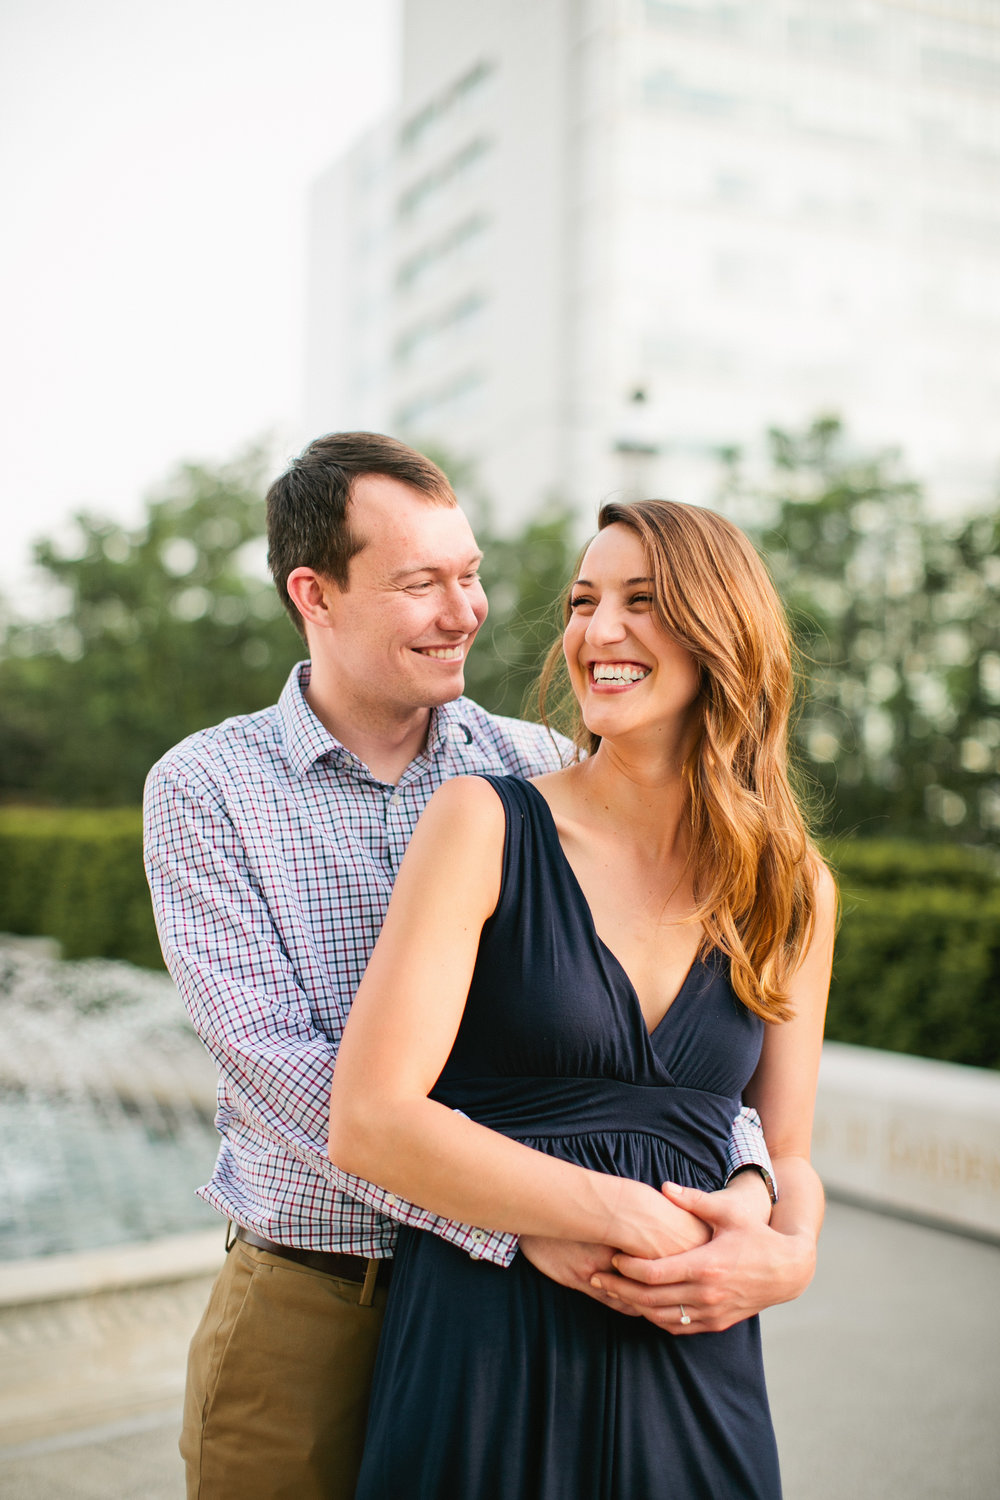 Cedar Rapids engagement photos downtown in front of water fountain